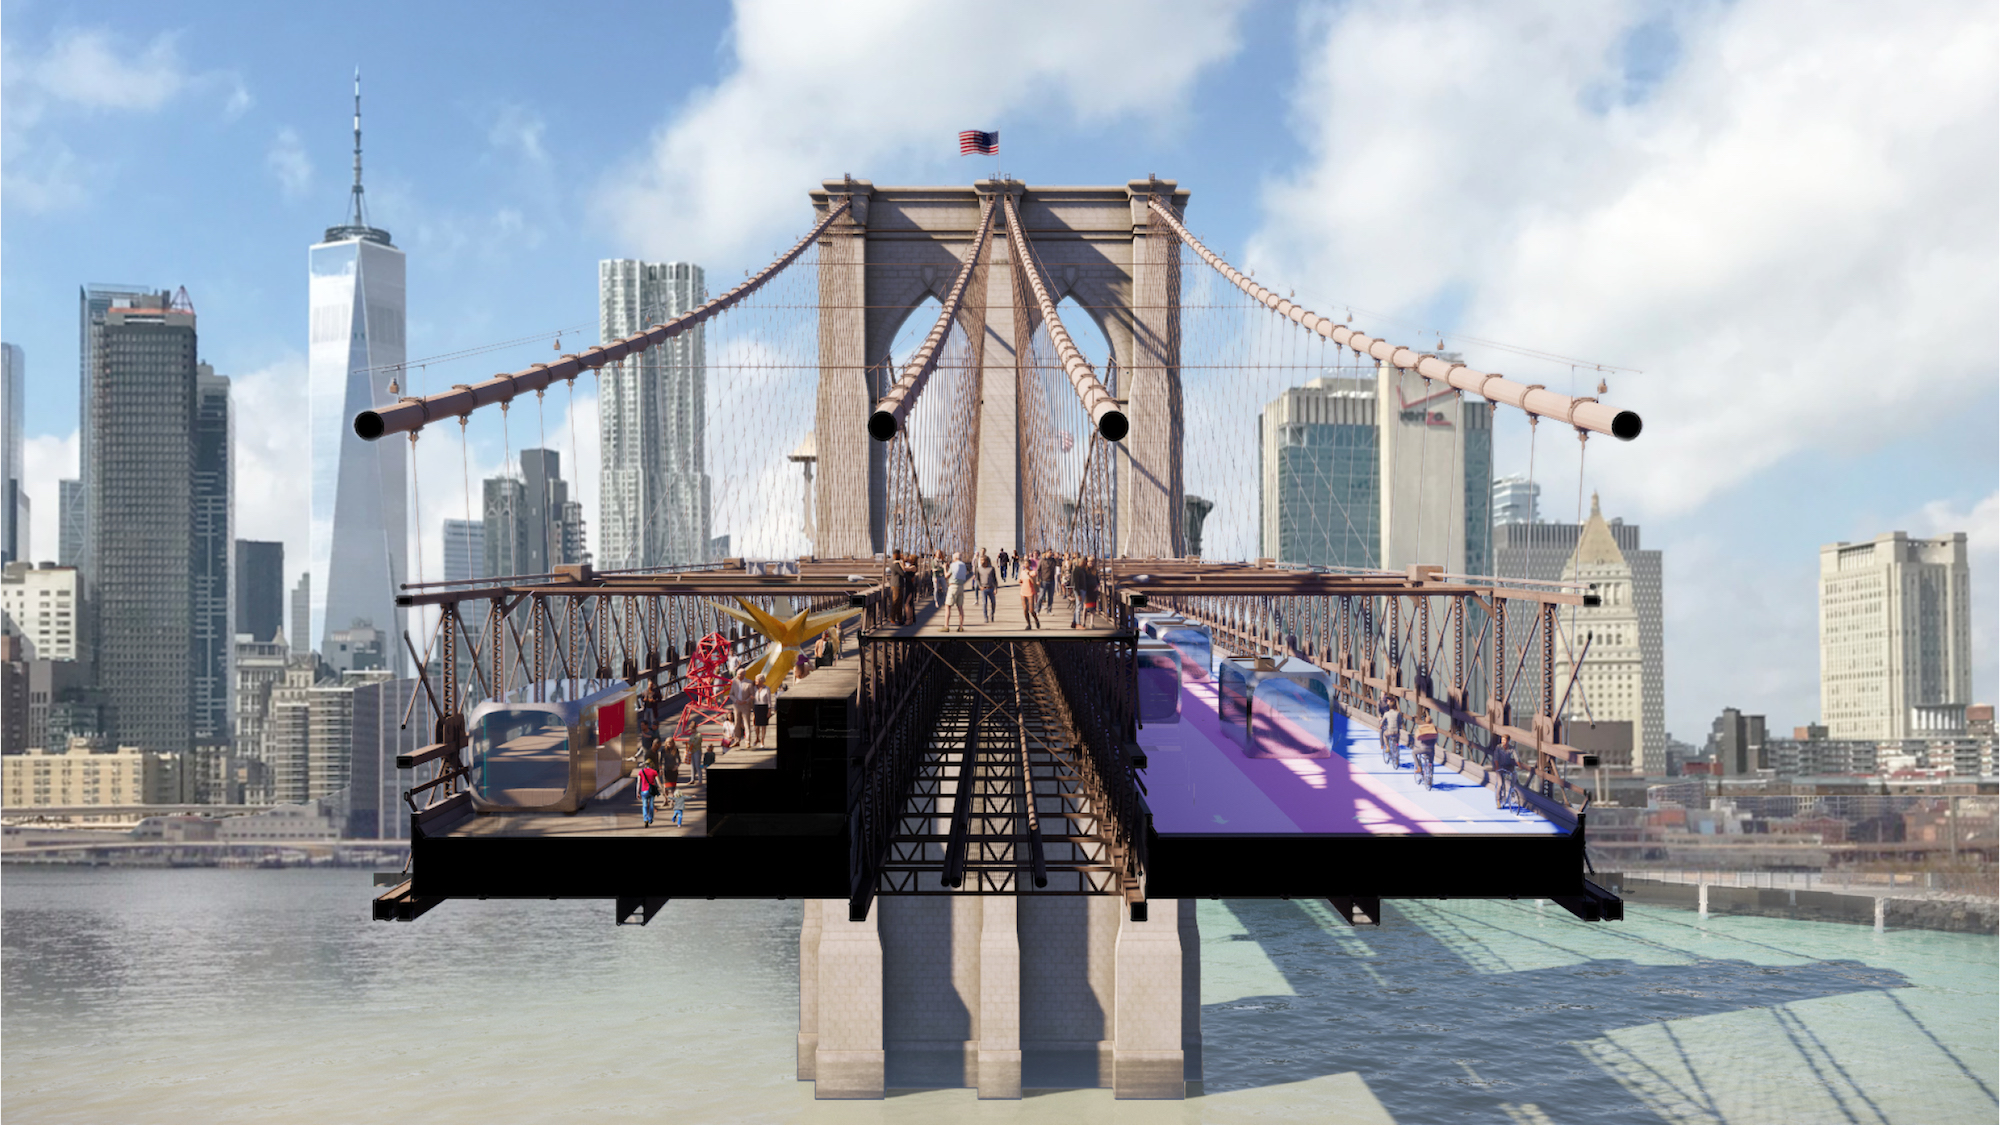 2020 Halloween Nyc Bridges See the design proposals that would make the Brooklyn Bridge a